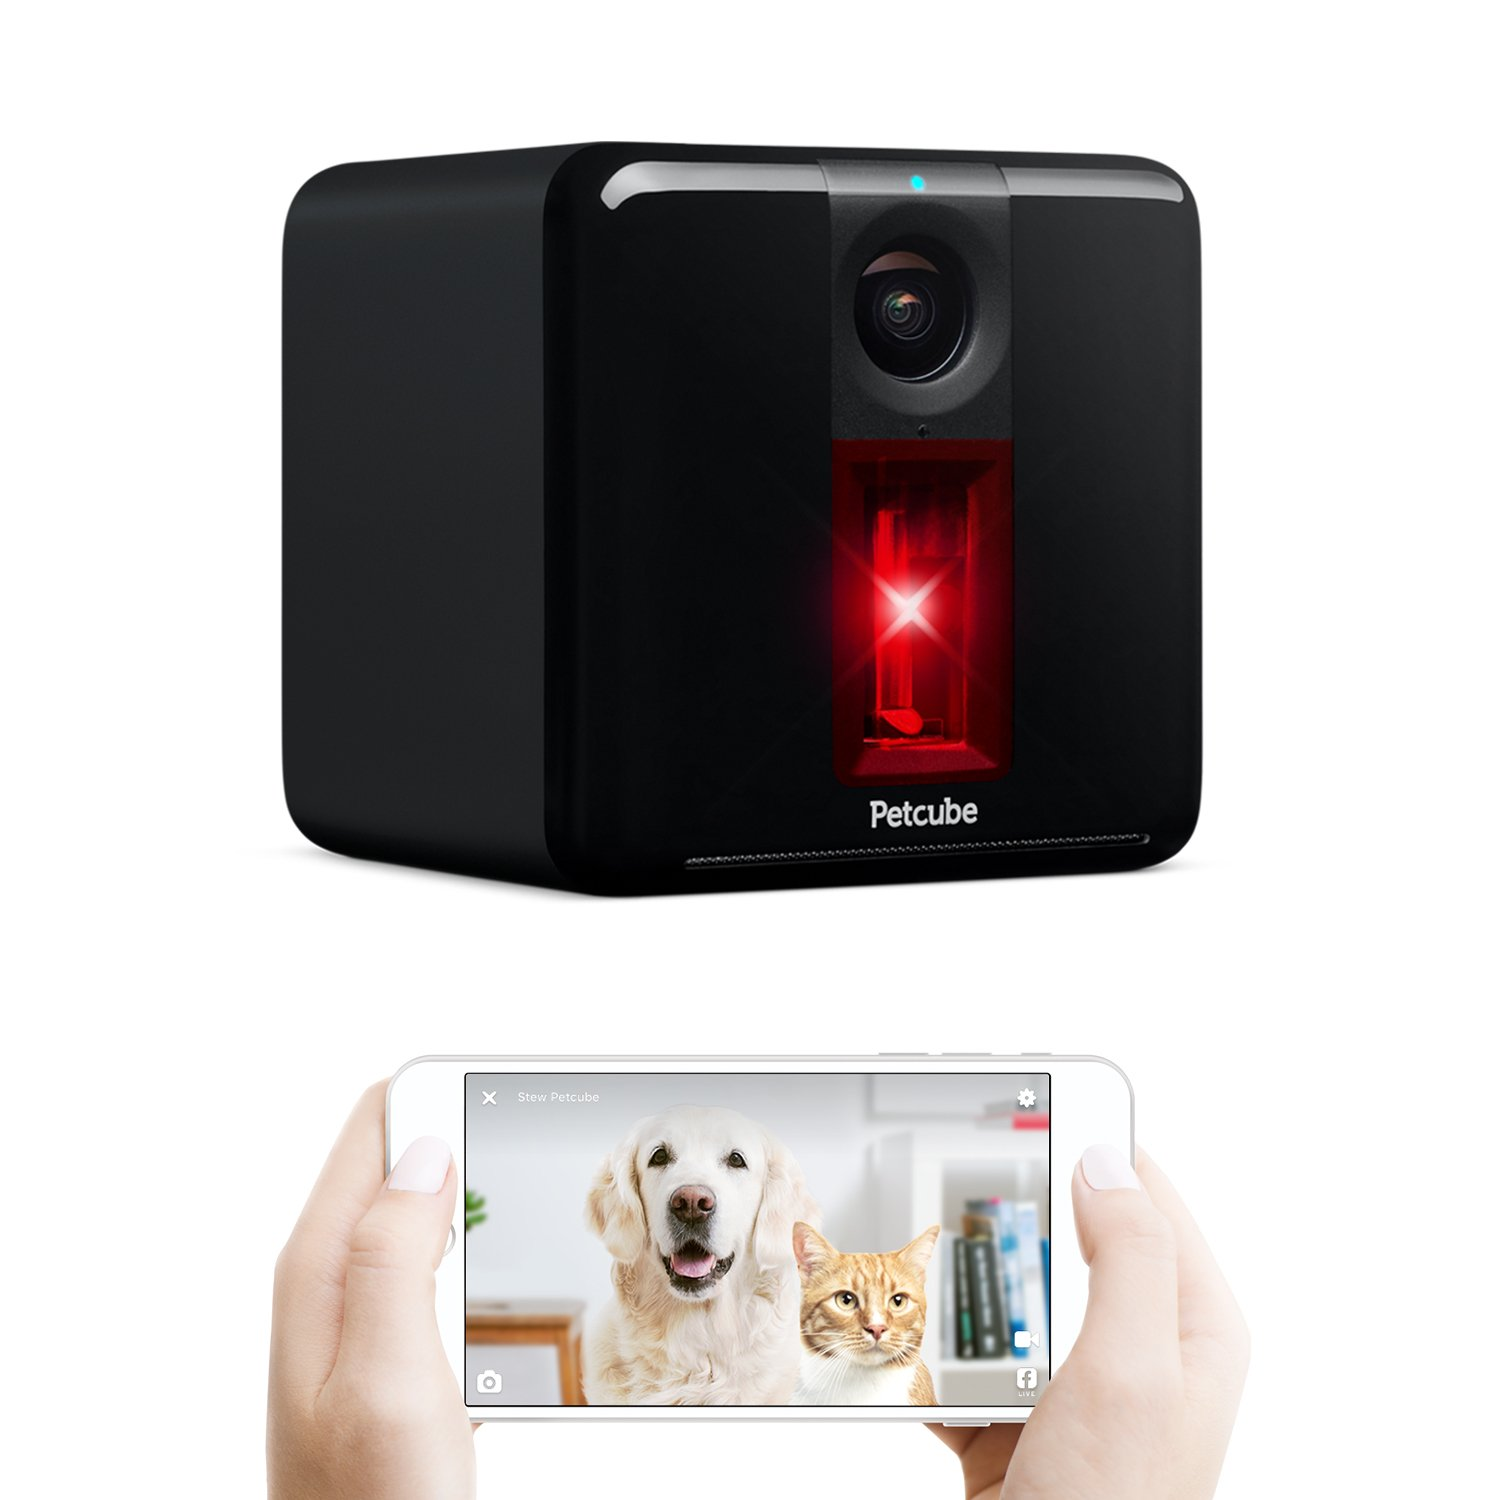 Buy Petcube Black on Amazon